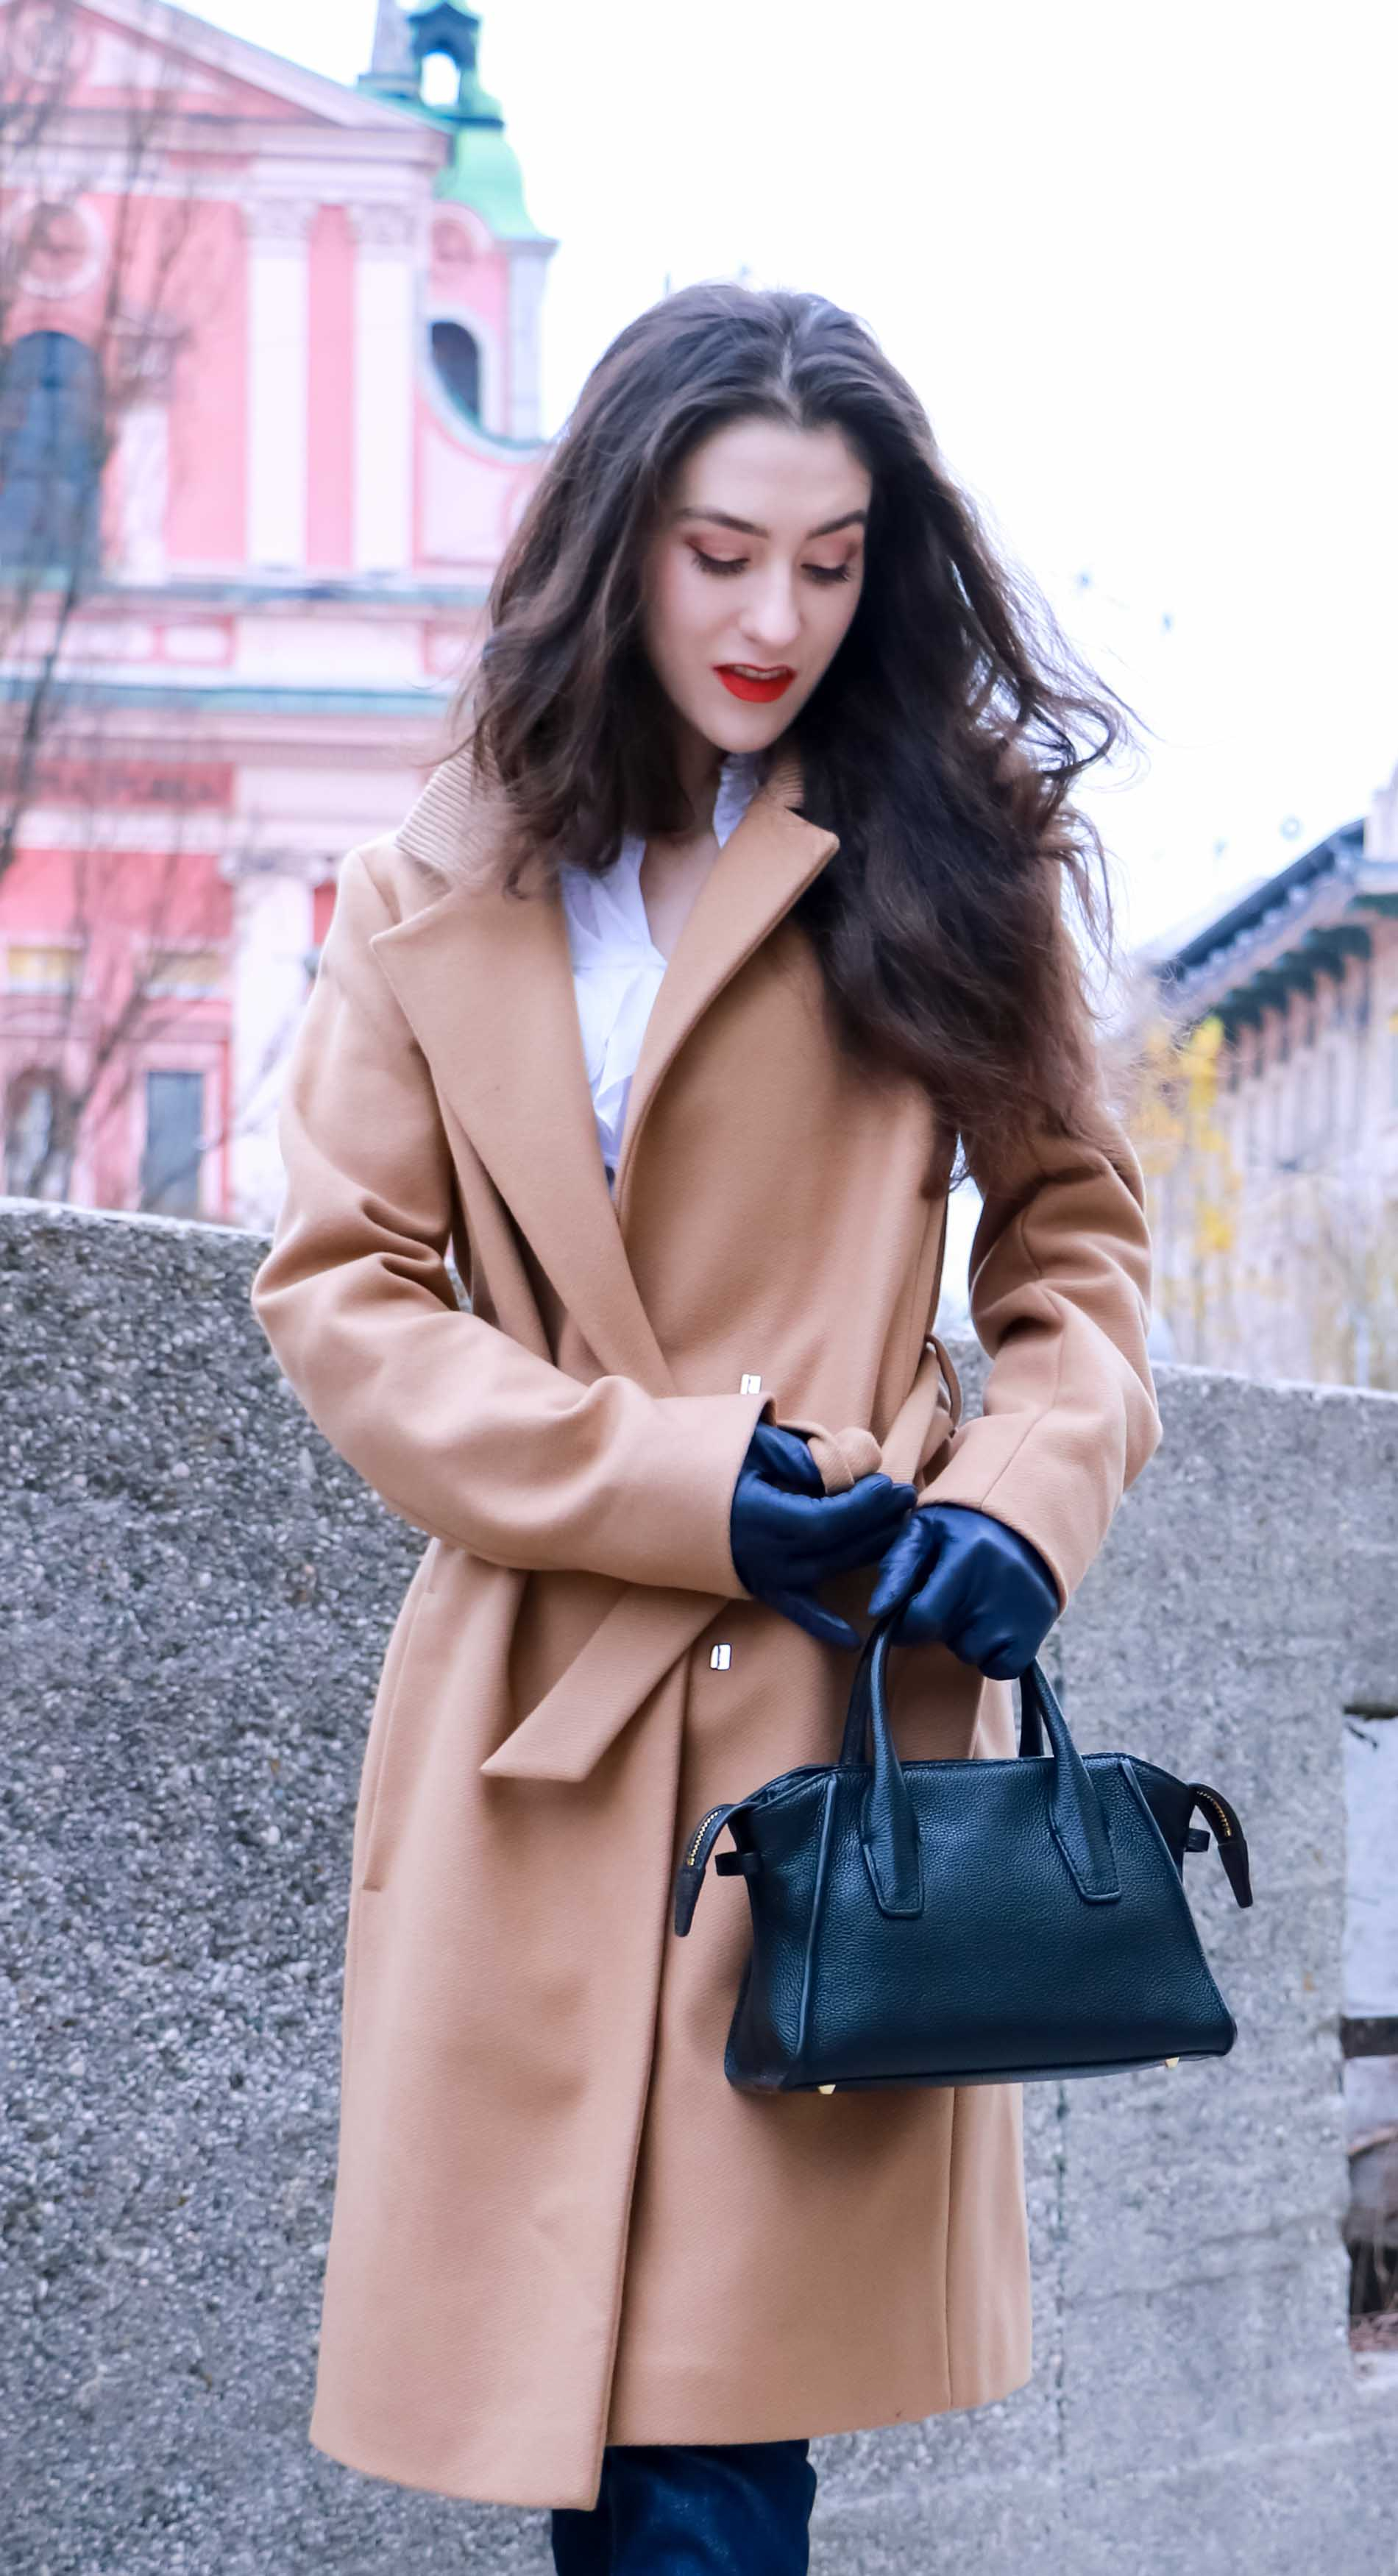 Fashion Blogger Veronika Lipar of Brunette from Wall Street dressed in camel wrap coat from Escada, tapered dark denim jeans from A.P.C., white tailored fringed shirt, small black top handle bag, blue leather gloves and red lipstick, business casual outfit for work, untieying her coat